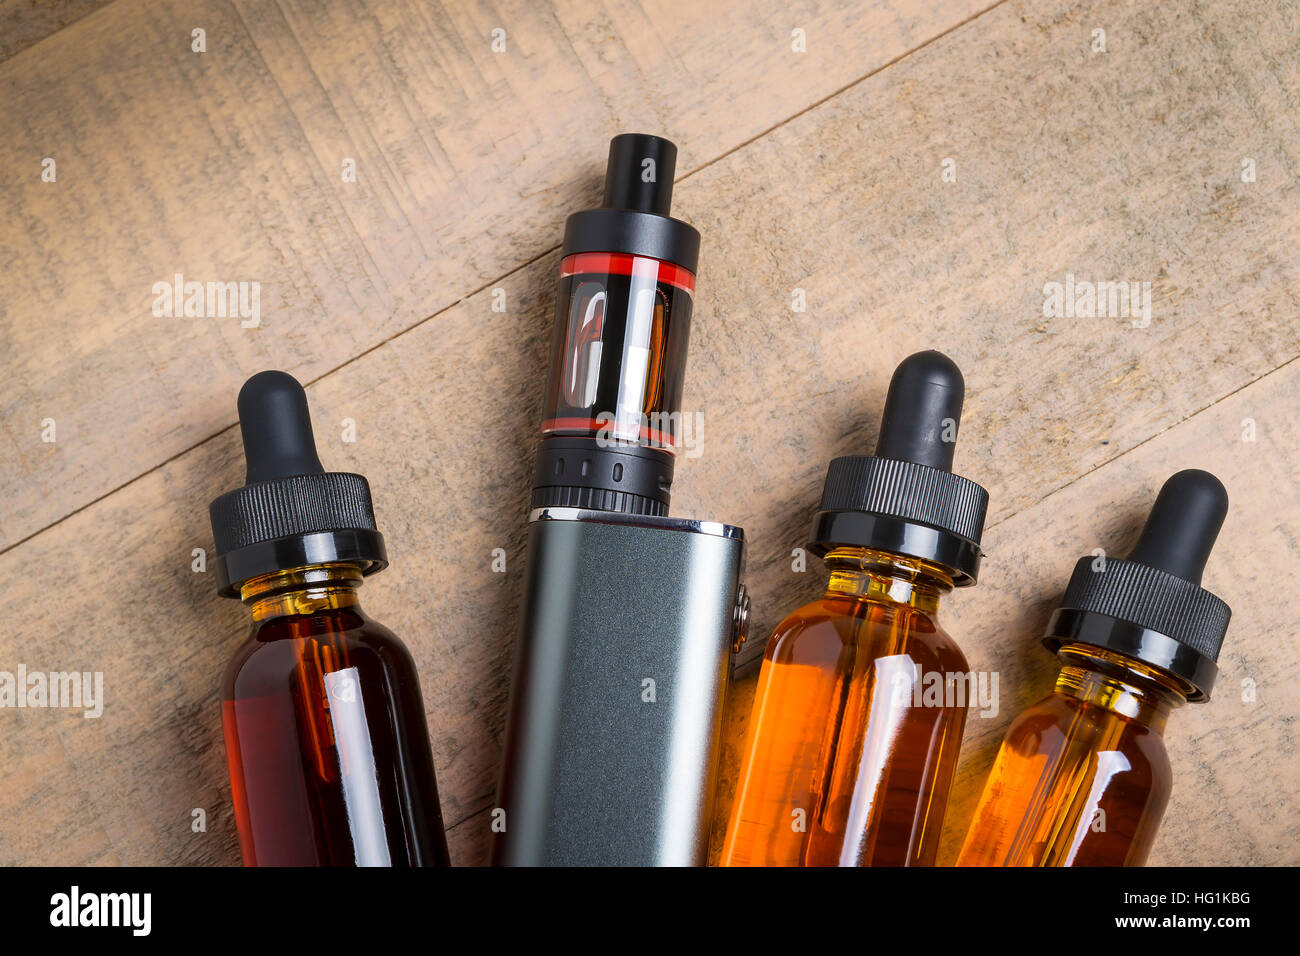 Vaping mod e-cig with tank atomizer and juice bottles over wood background - Stock Image